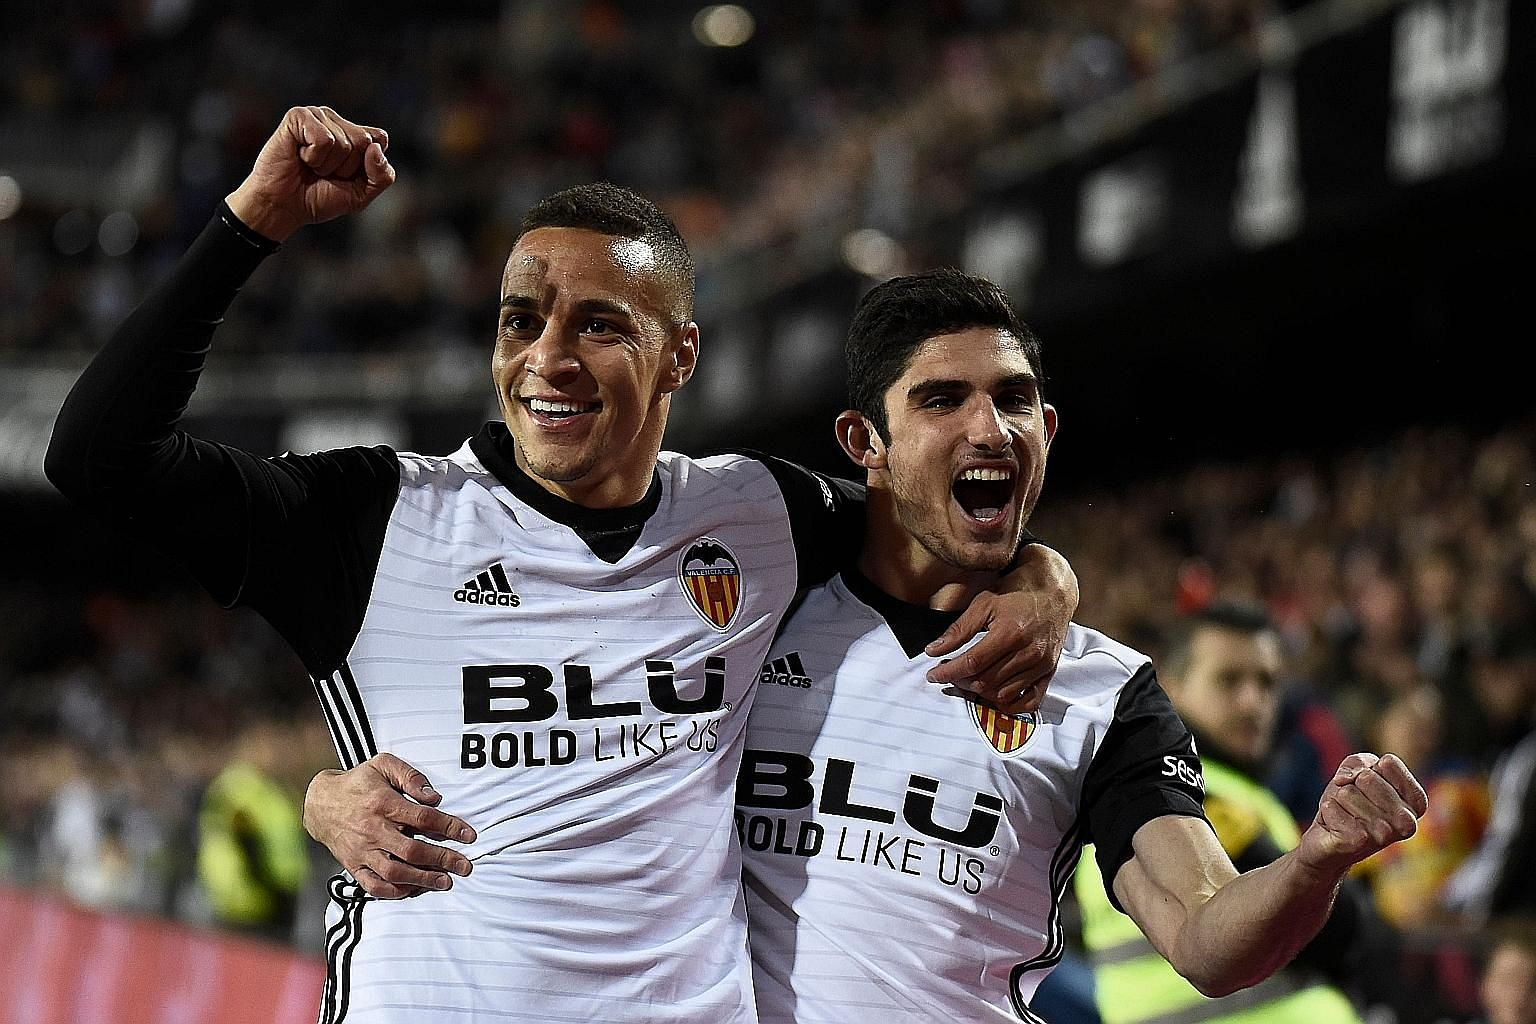 Rodrigo Moreno (far left, with midfielder Goncalo Guedes) has powered Valencia's bid for Champions League football with 16 LaLiga goals this season. Striker Santi Mina, 22 (below), with 12 league goals in 17 games, is one of the young guns who have i